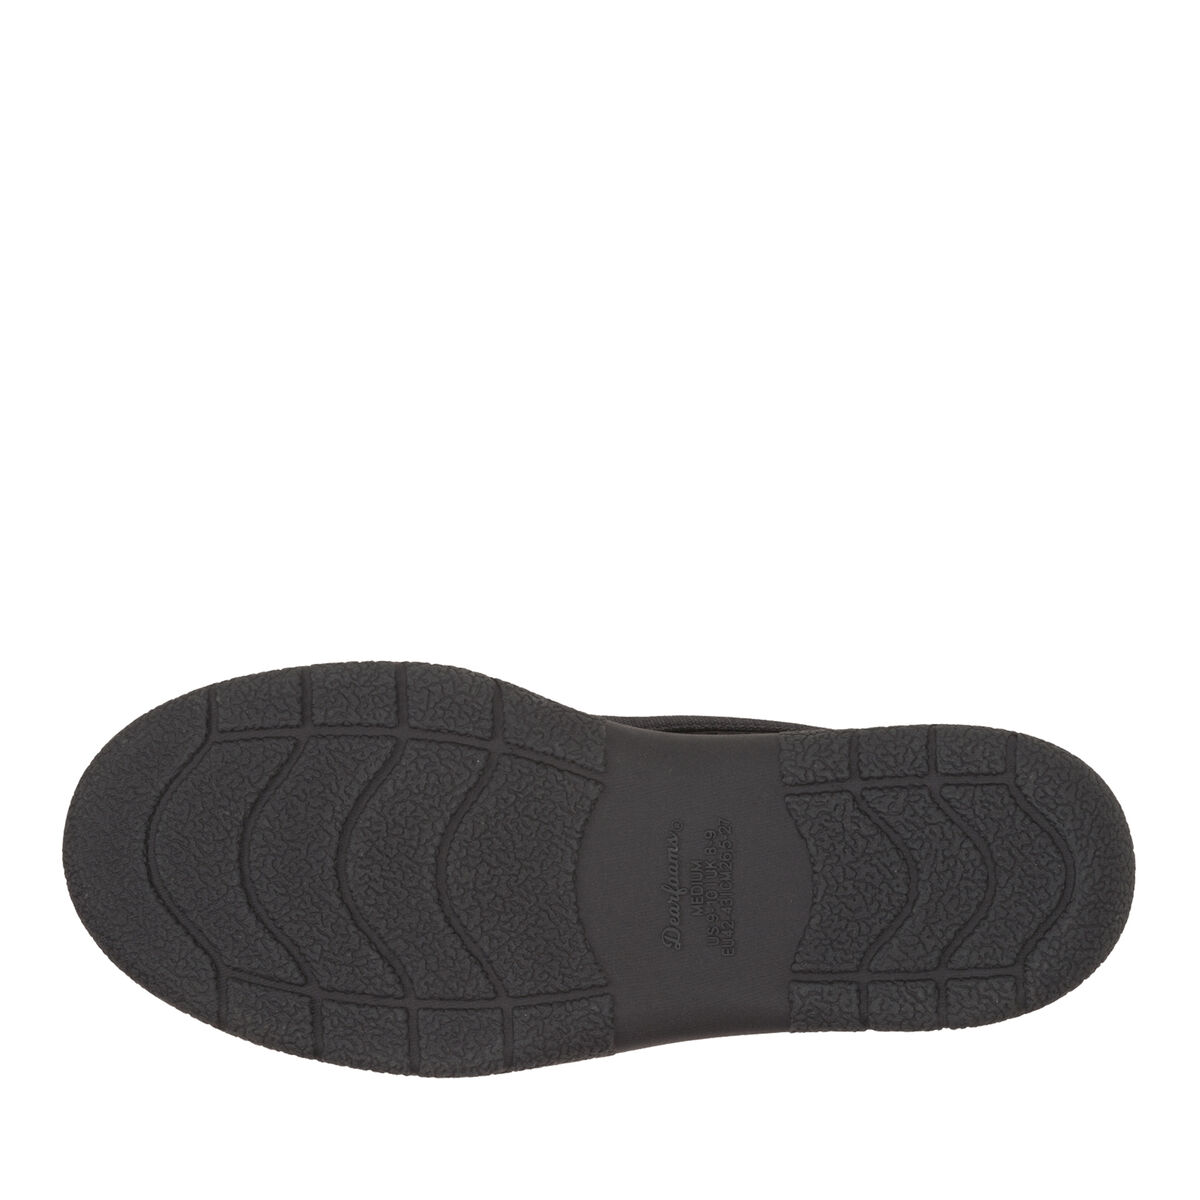 Men's Mixed Material Moccasin with Memory Foam